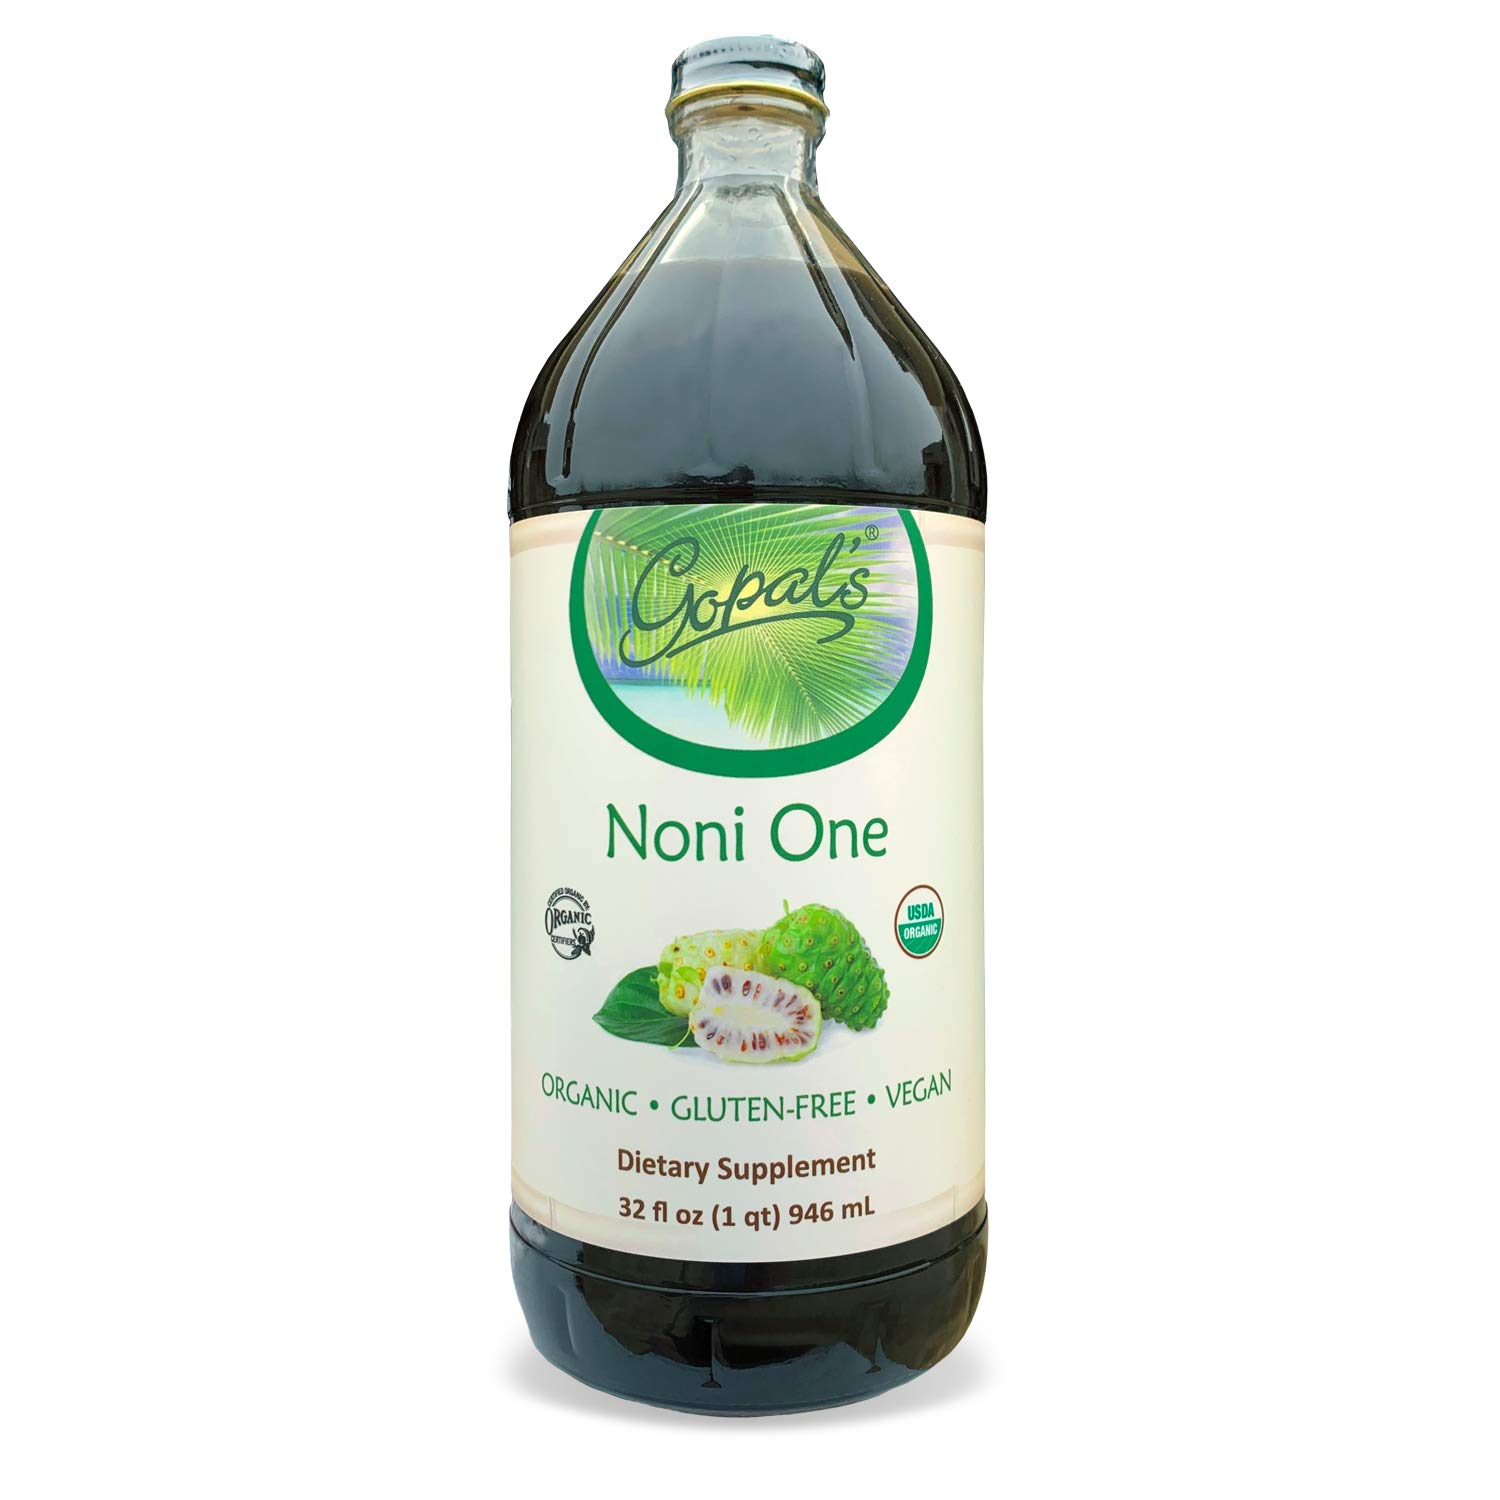 Noni One | 100% Pure Organic Noni Juice - 32oz Glass Bottle (1 qt) | Gluten-Free and Vegan Superfruit Supplement, 30,000mg of Noni Juice Per Serving, Vitamin and Antioxidant Rich | Gopal's Healthfoods